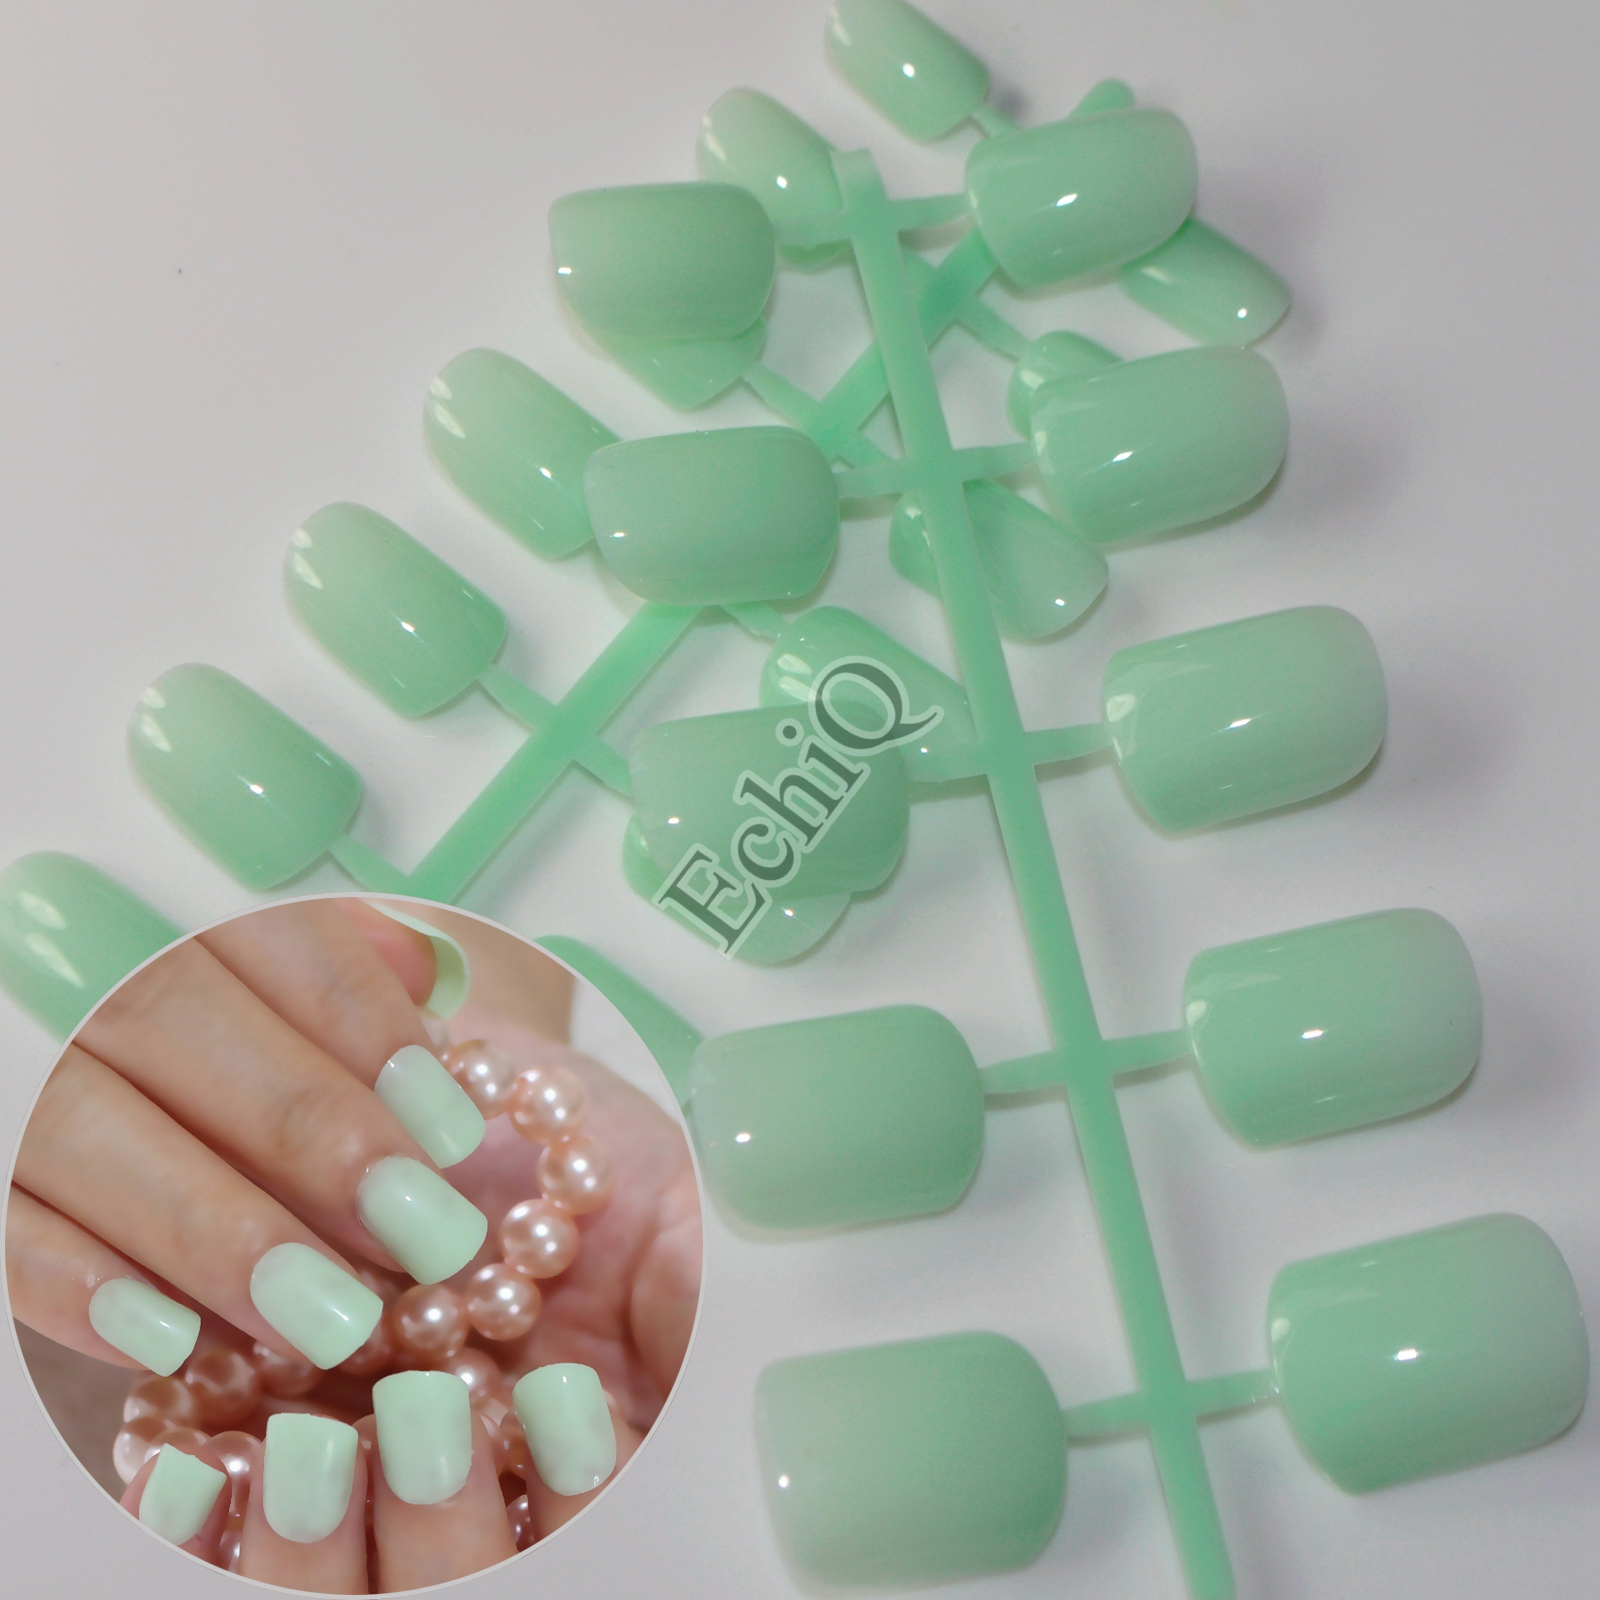 24pcs Light Green Medium Nail Fashion Lady False Nails Simple Design Fake Nails Art Press On Nails 426